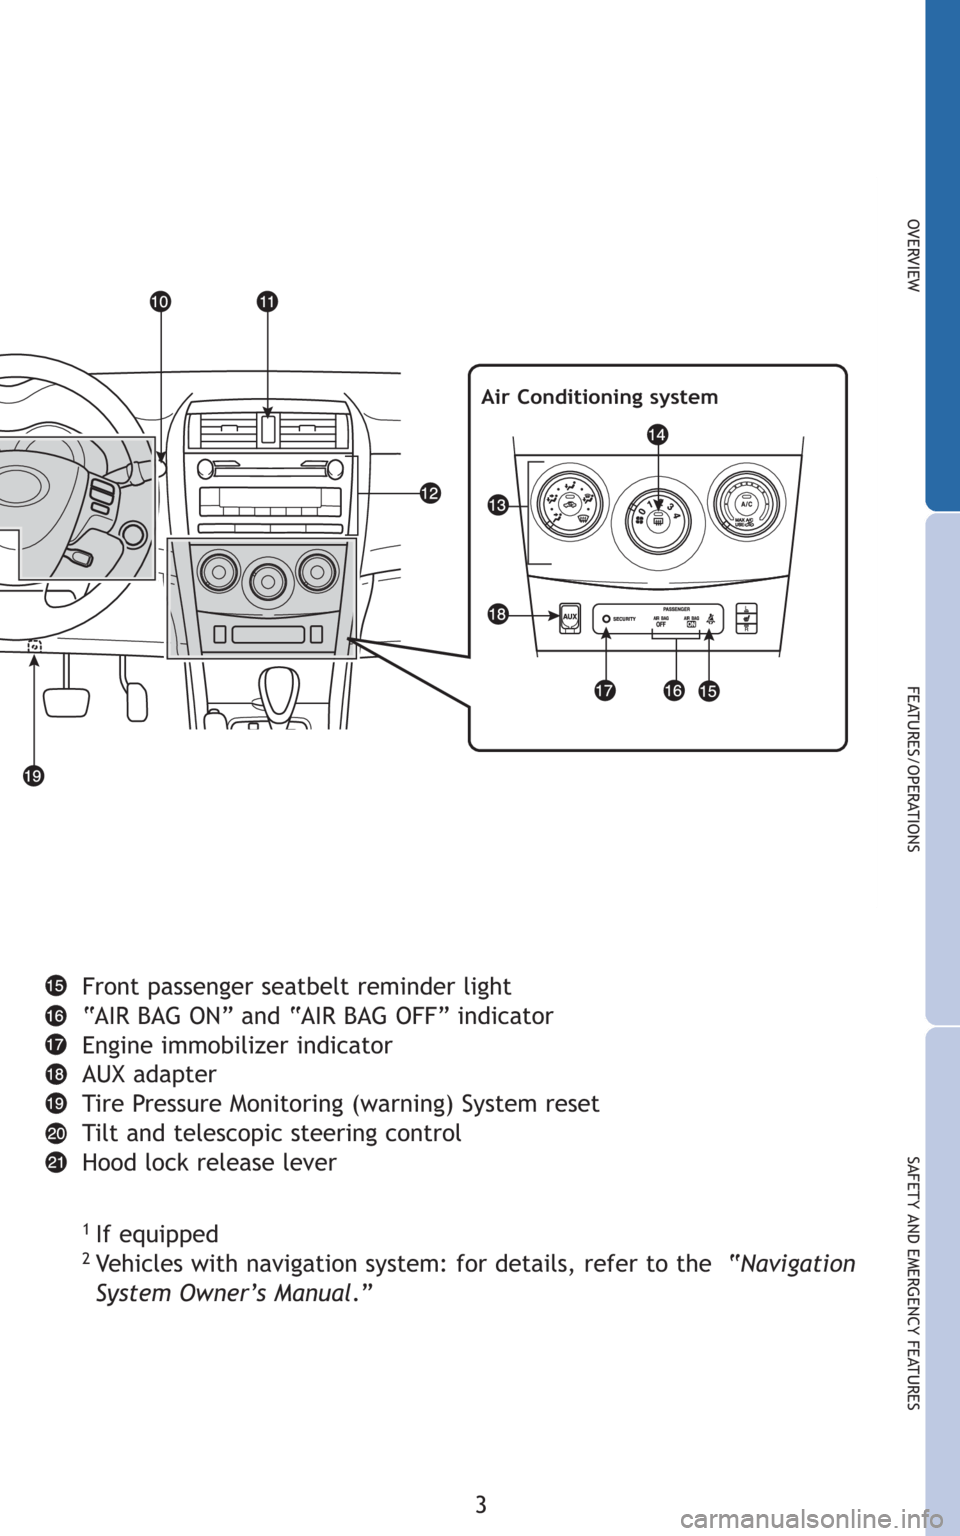 hight resolution of toyota corolla 2010 10 g quick reference guide page 5